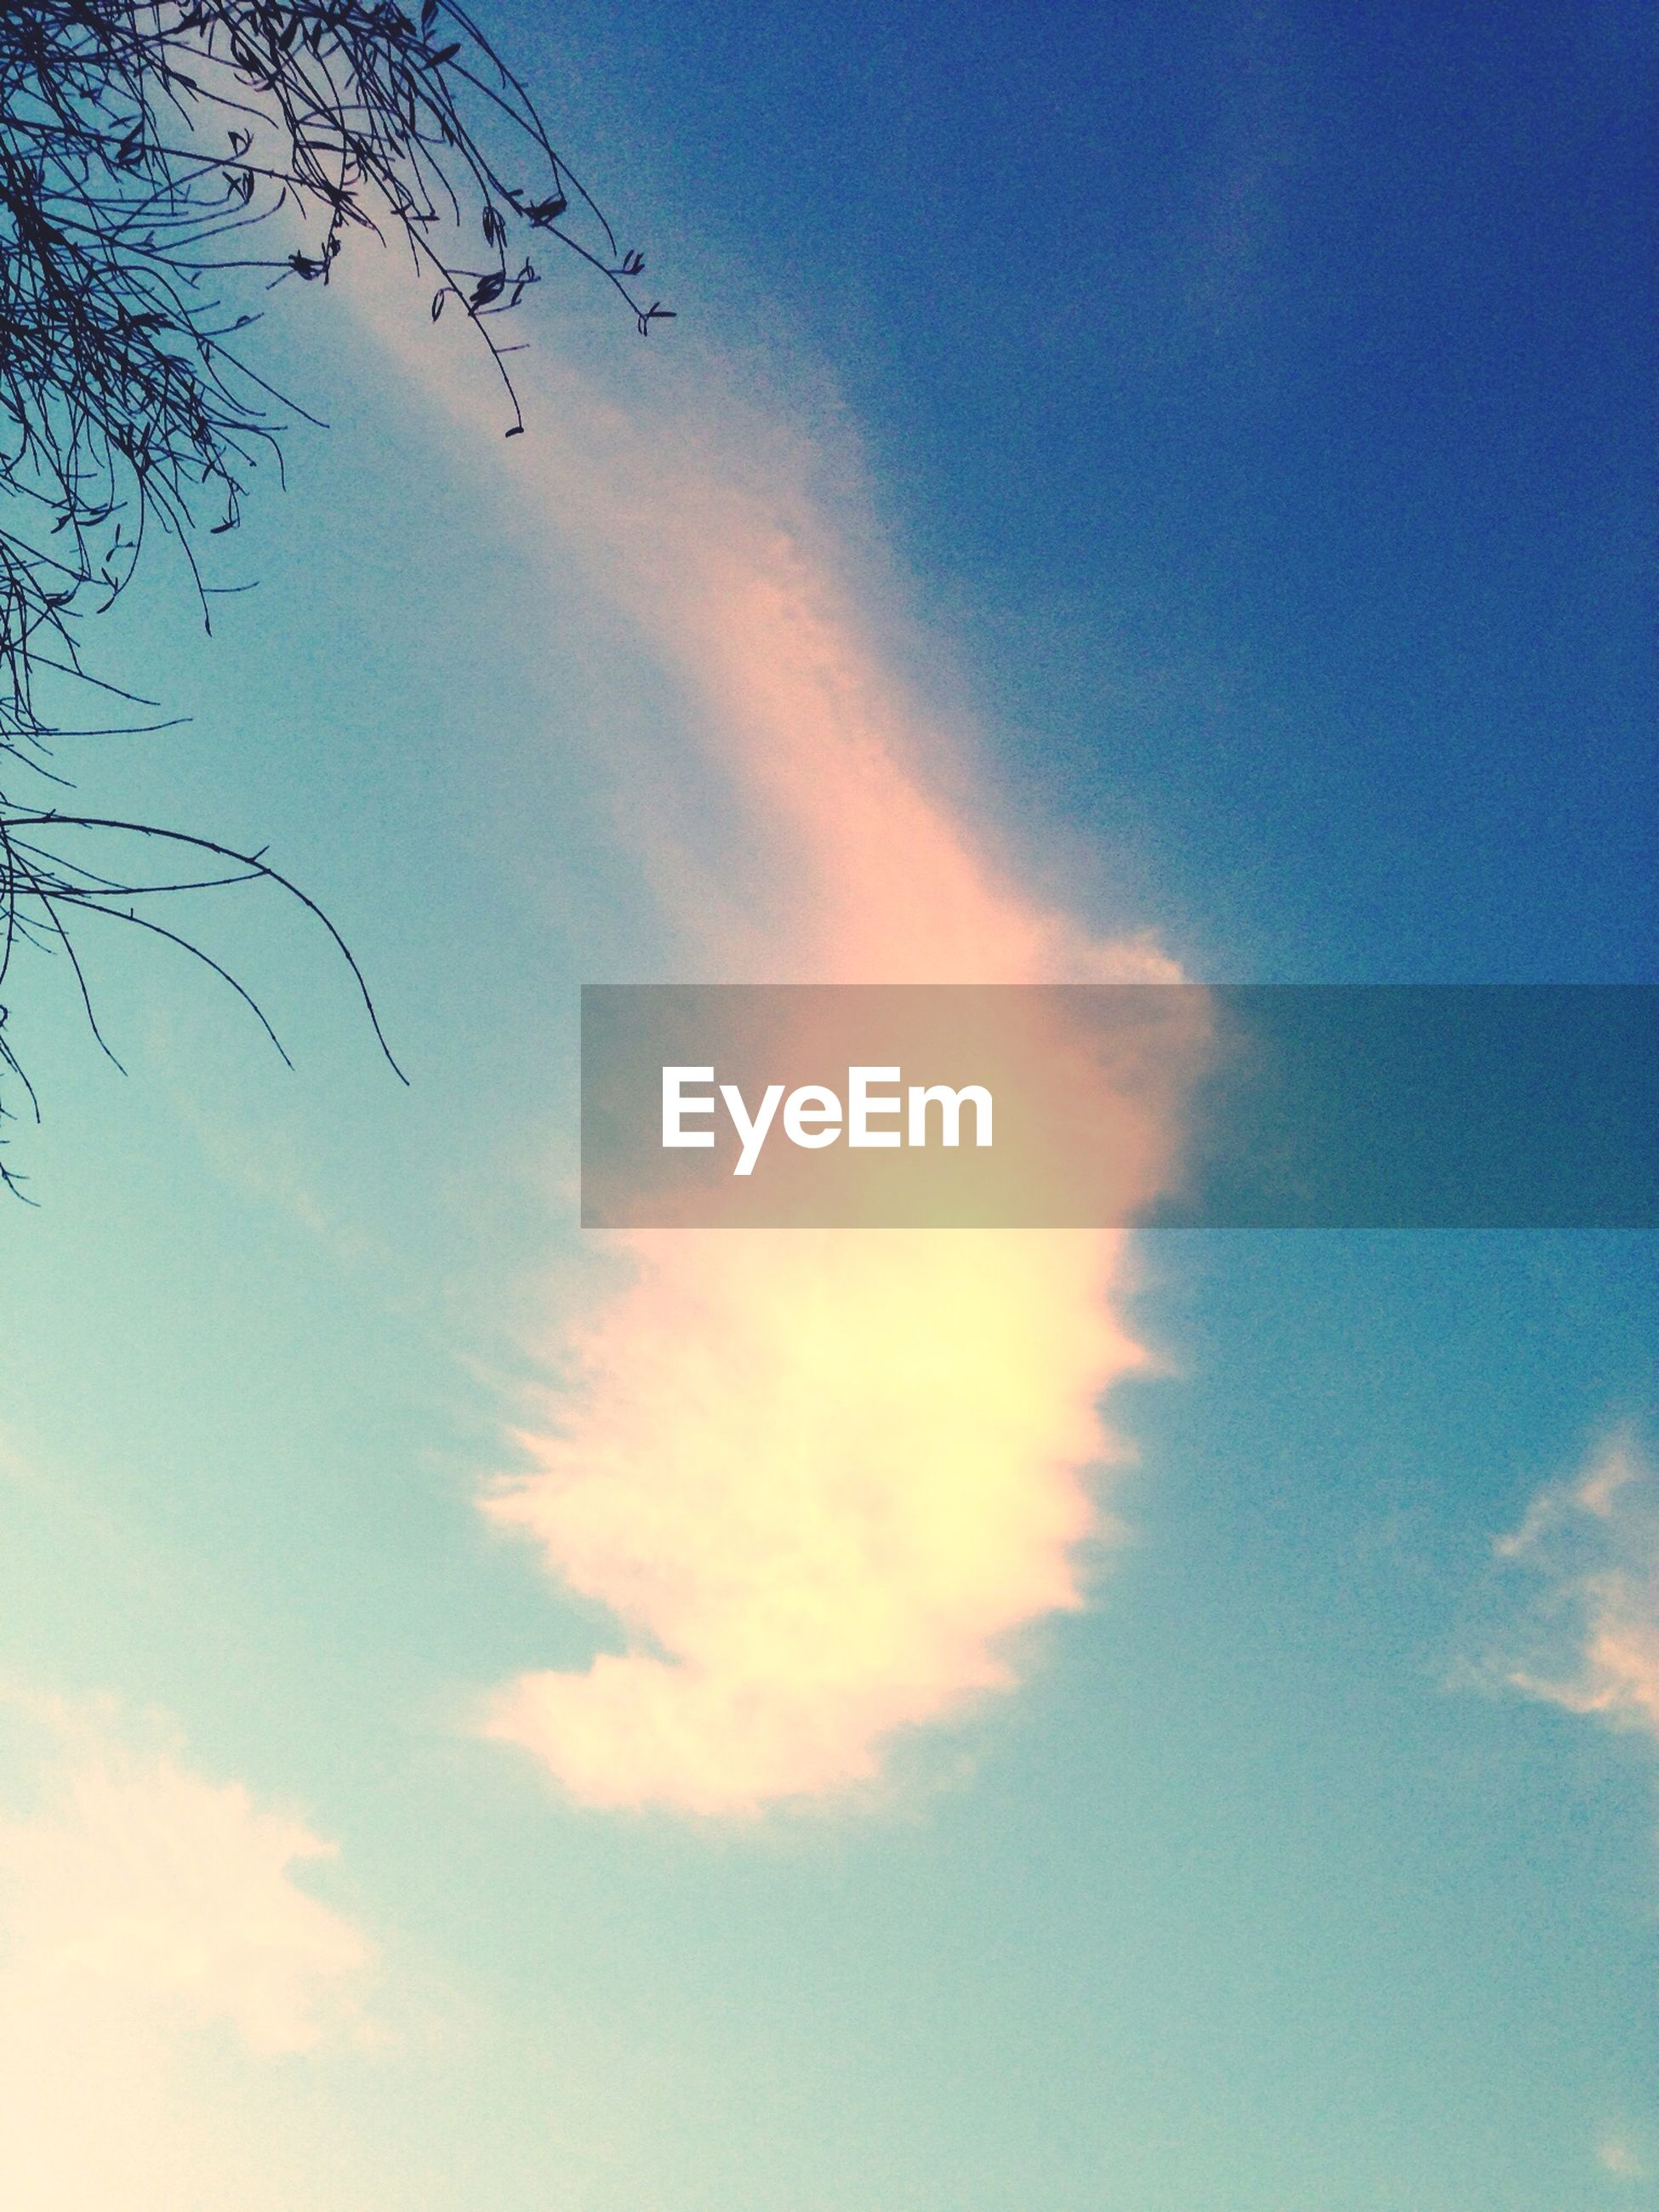 low angle view, sky, blue, cloud - sky, beauty in nature, tranquility, nature, scenics, cloud, tranquil scene, outdoors, sunset, no people, silhouette, cloudy, idyllic, sky only, day, tree, backgrounds